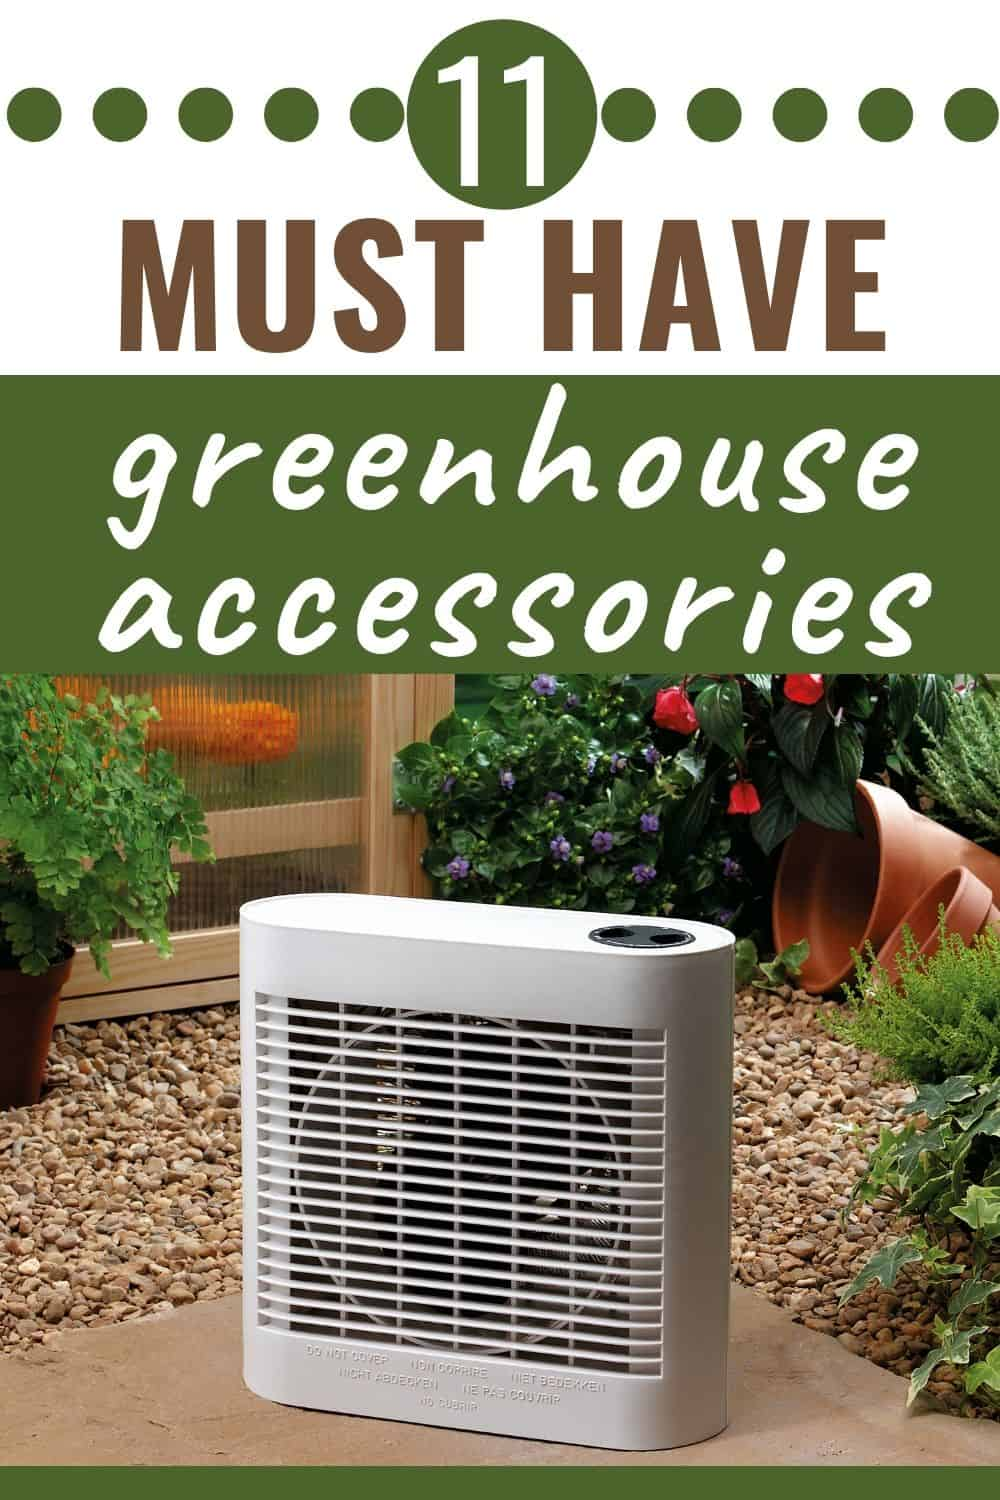 11 must-have greenhouse accessories